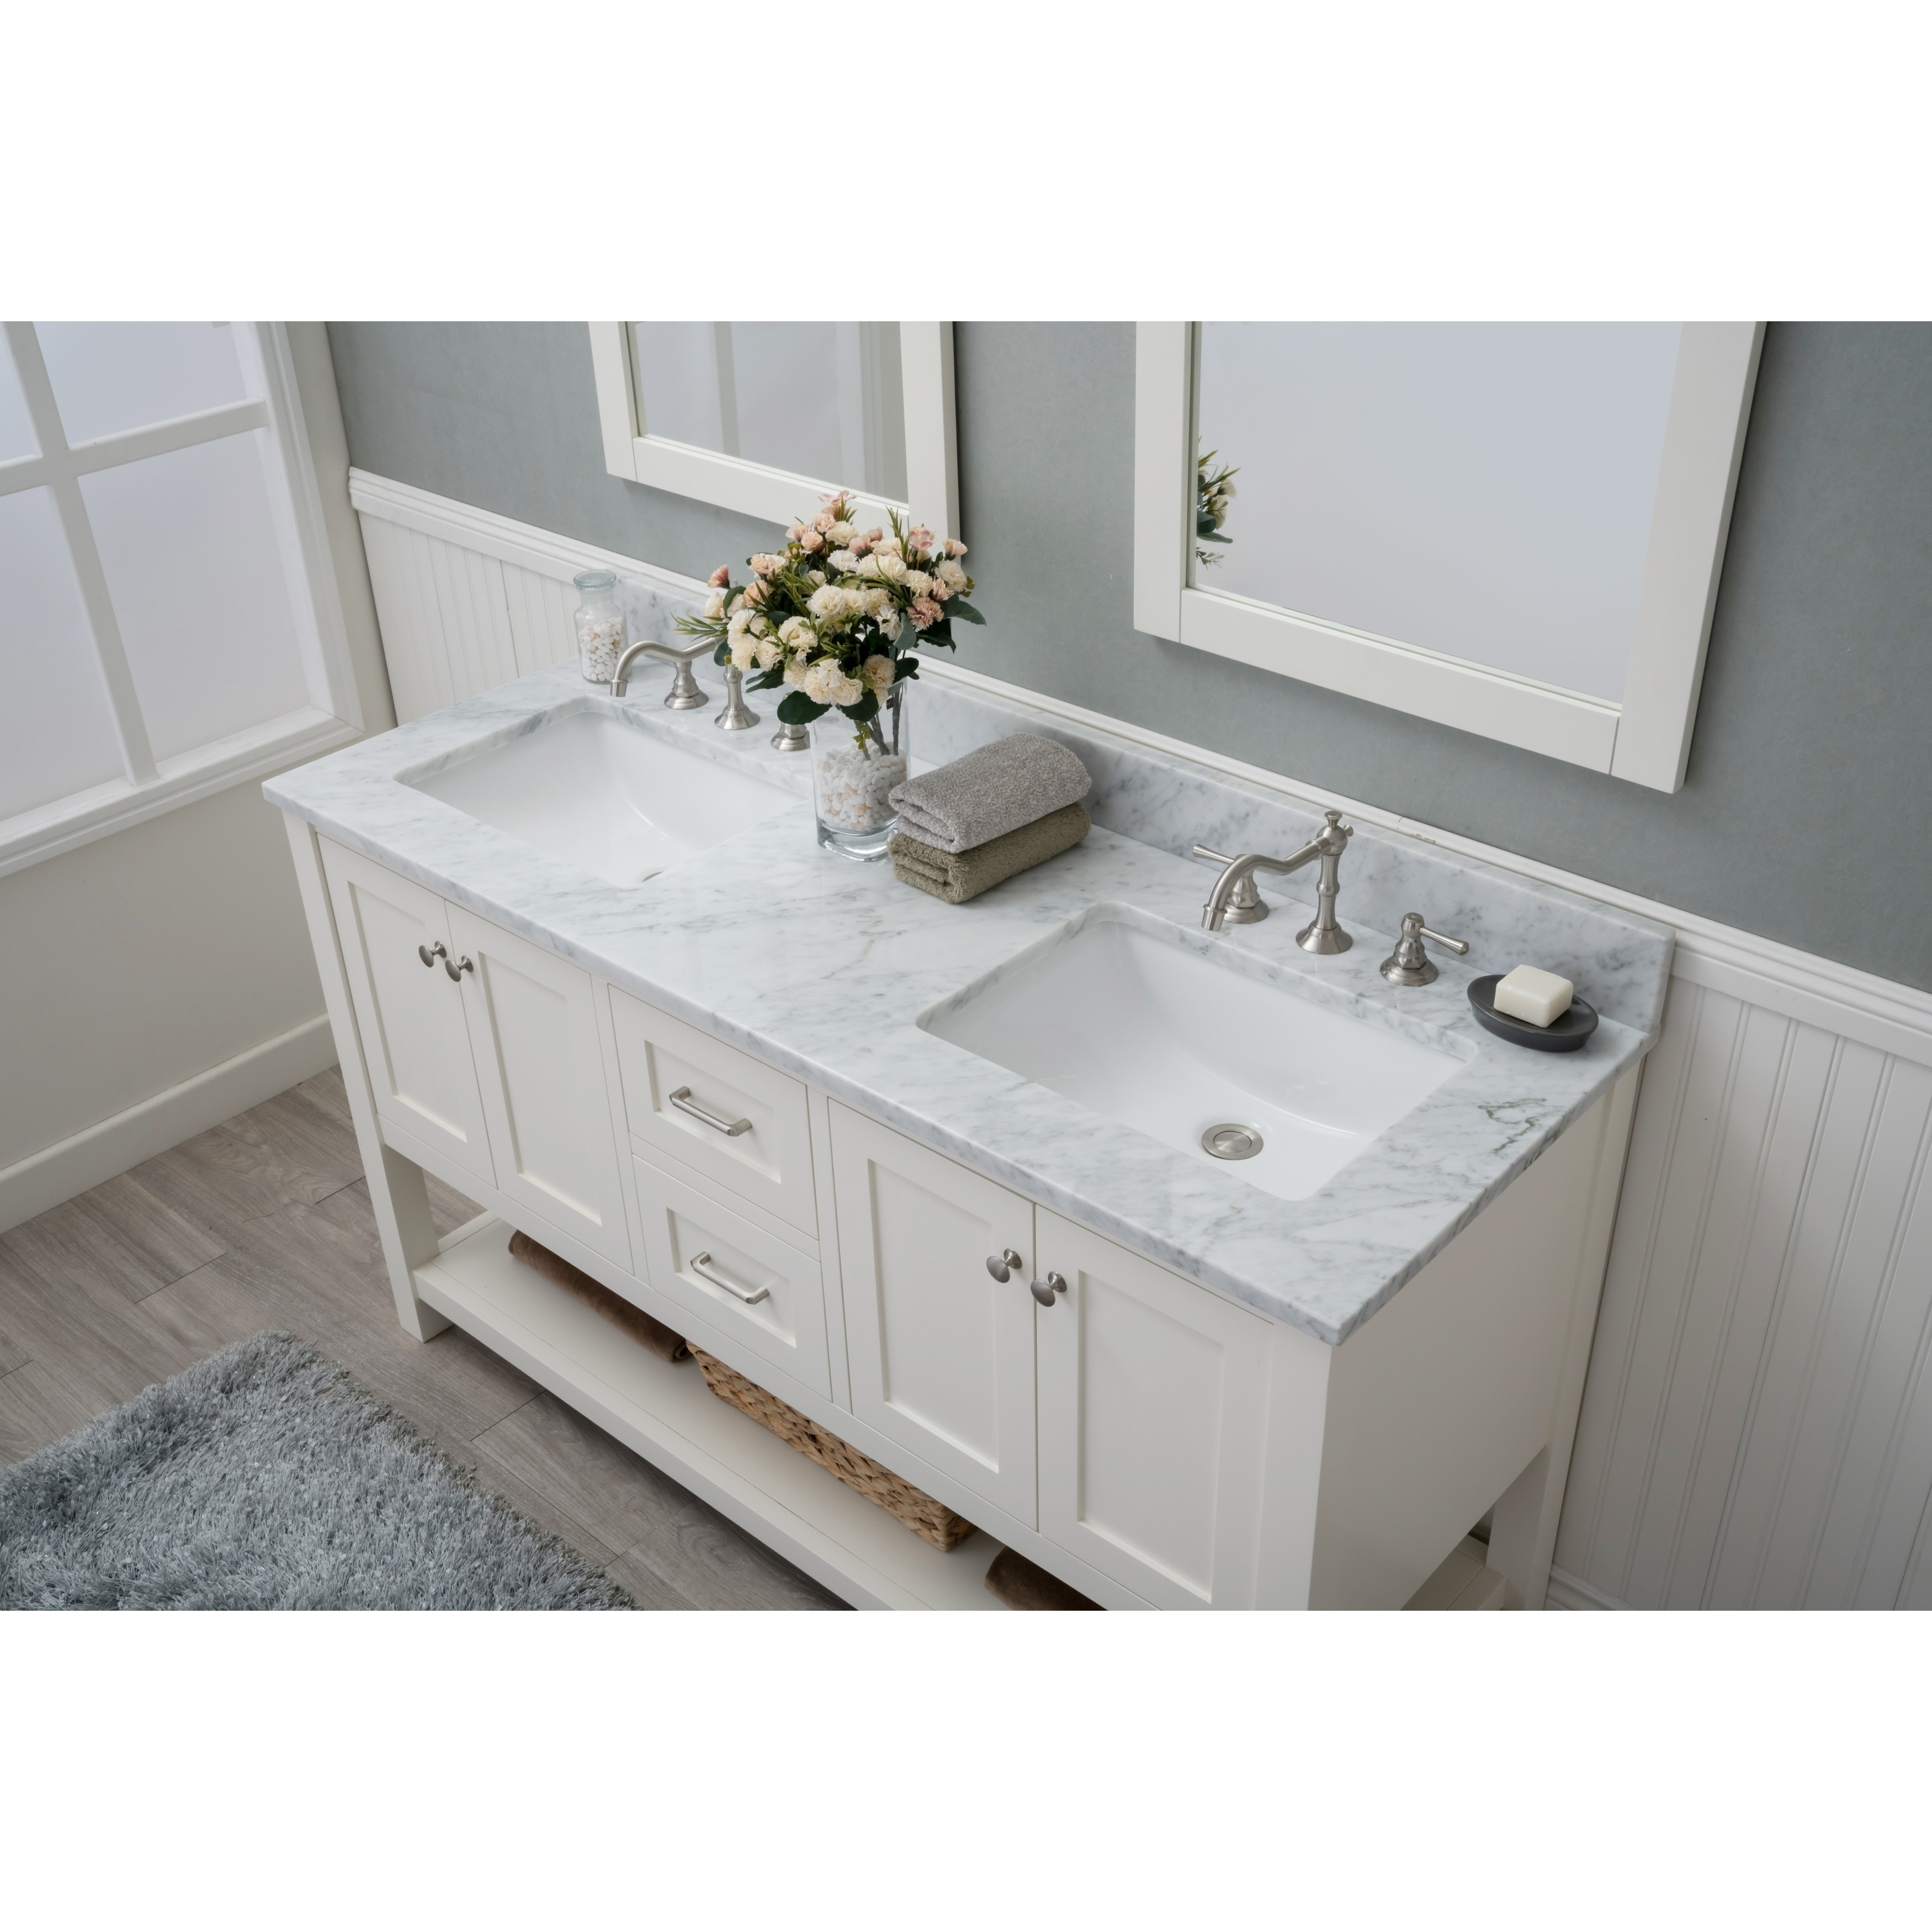 Home Elements Vl60421 White Carrara Marble 60 Inch Cream Vanity Free Shipping Today 17018289